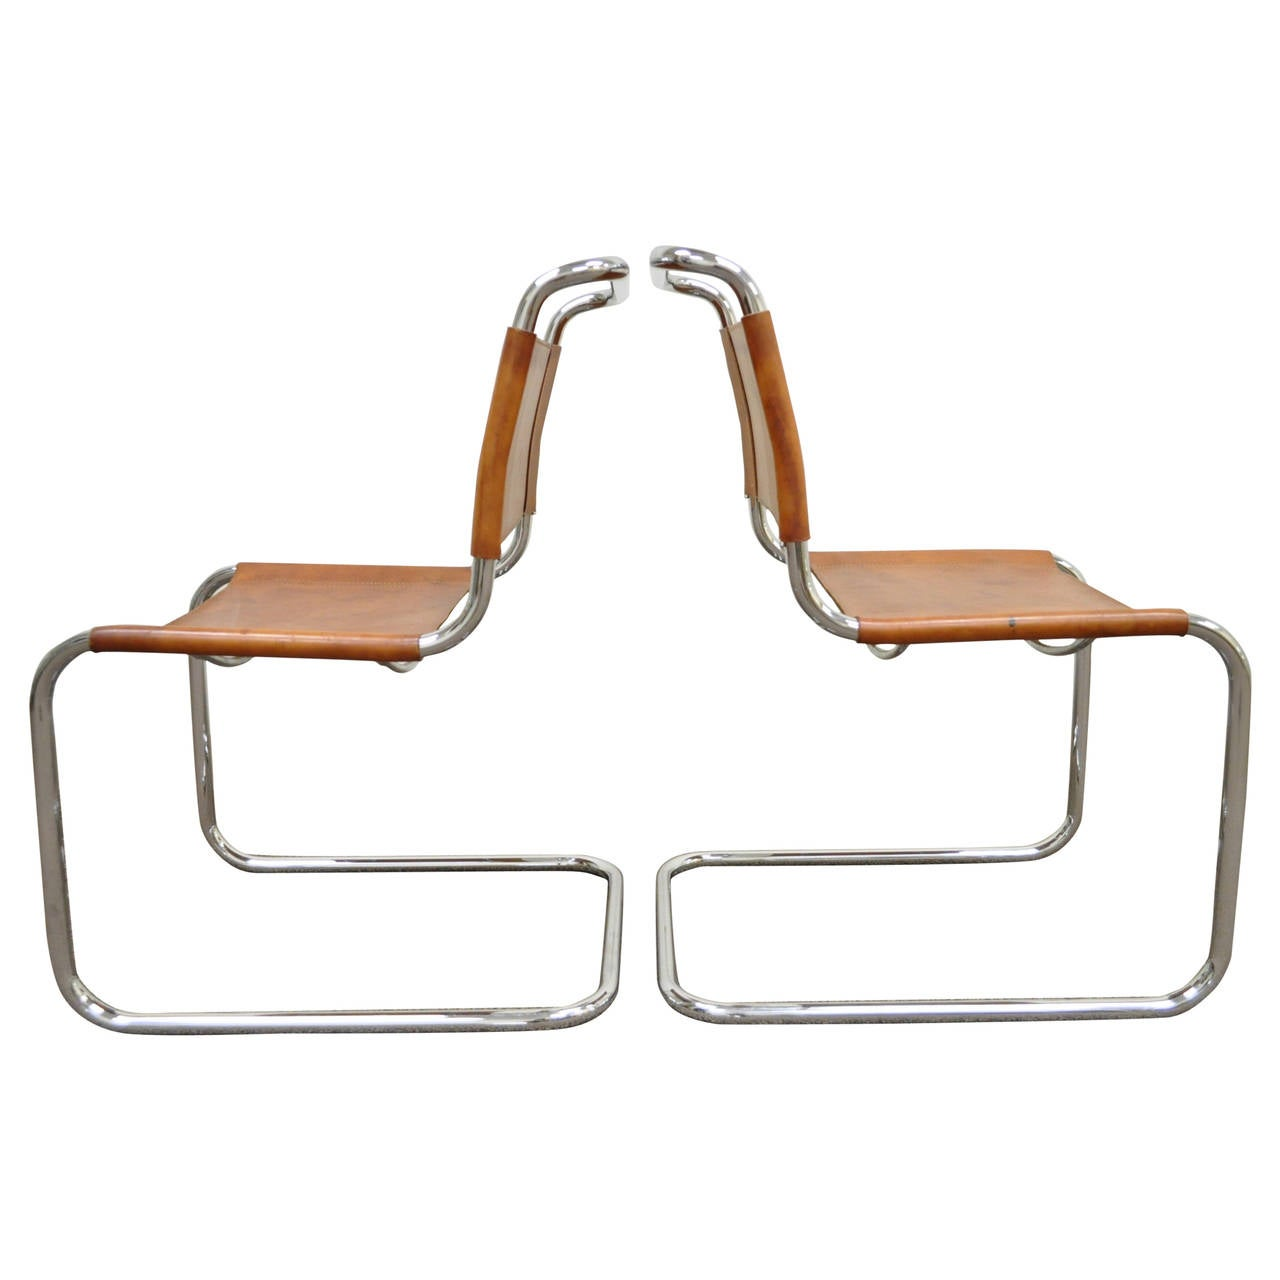 Pair of Mr Brown Leather and Chrome Chairs Attributed to Mies van der Rohe